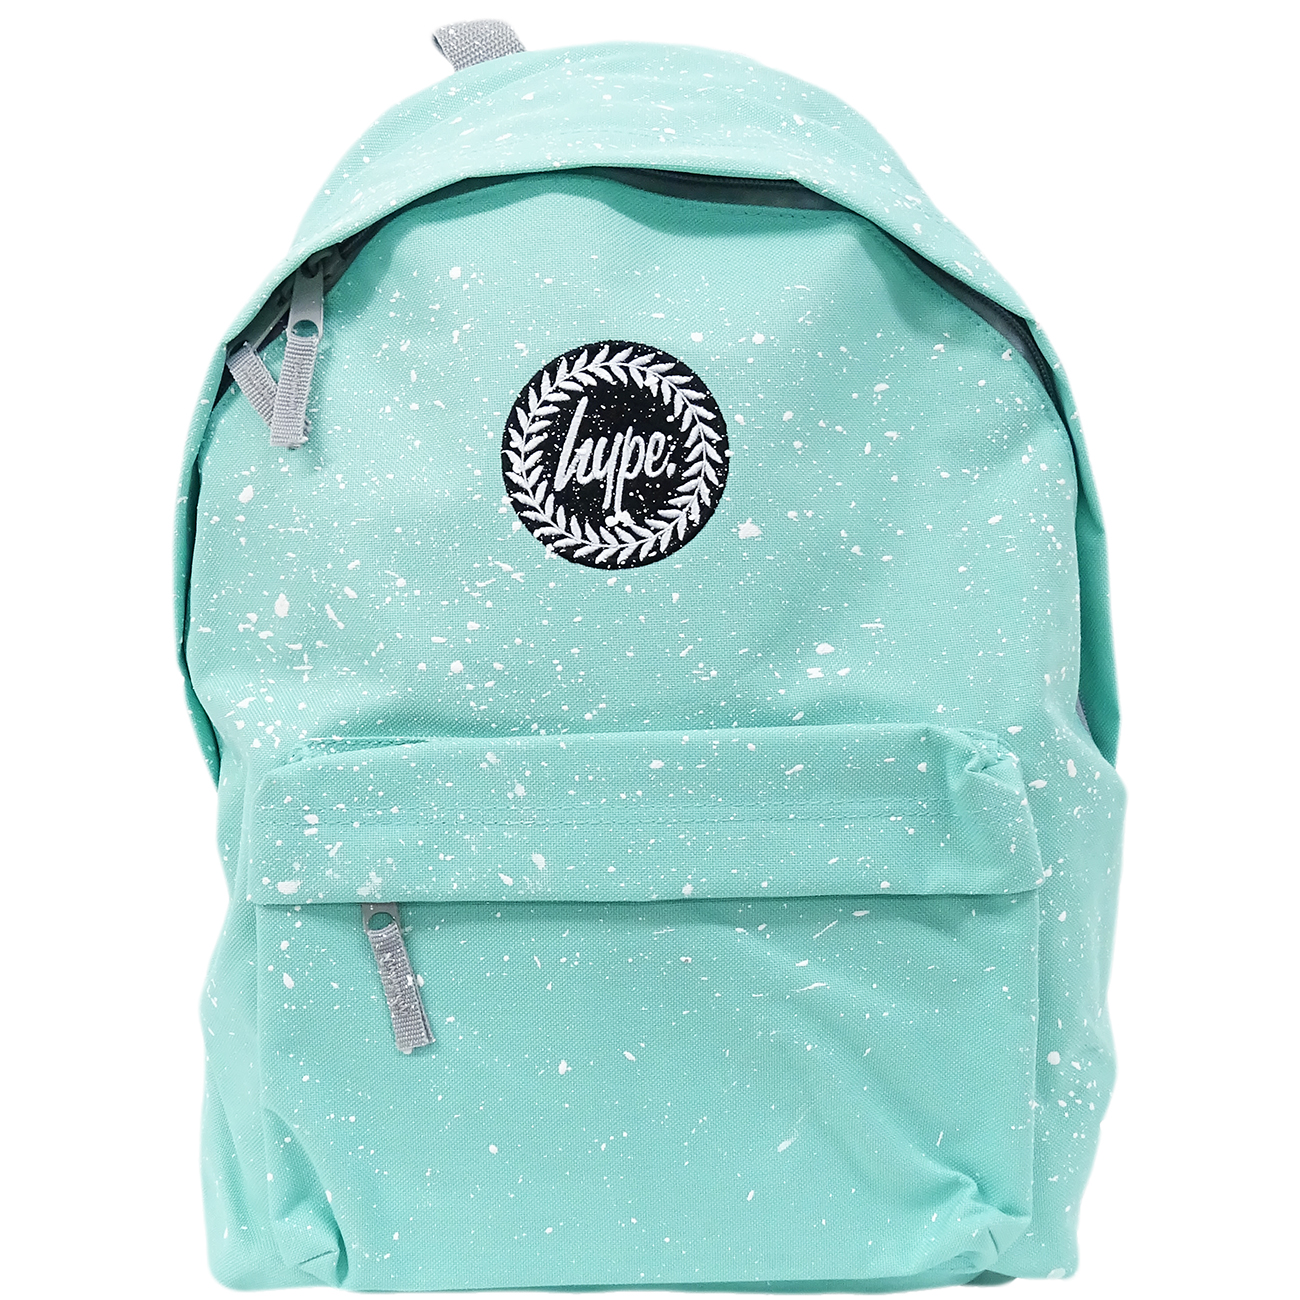 Hype Backpack Speckled Mint with White